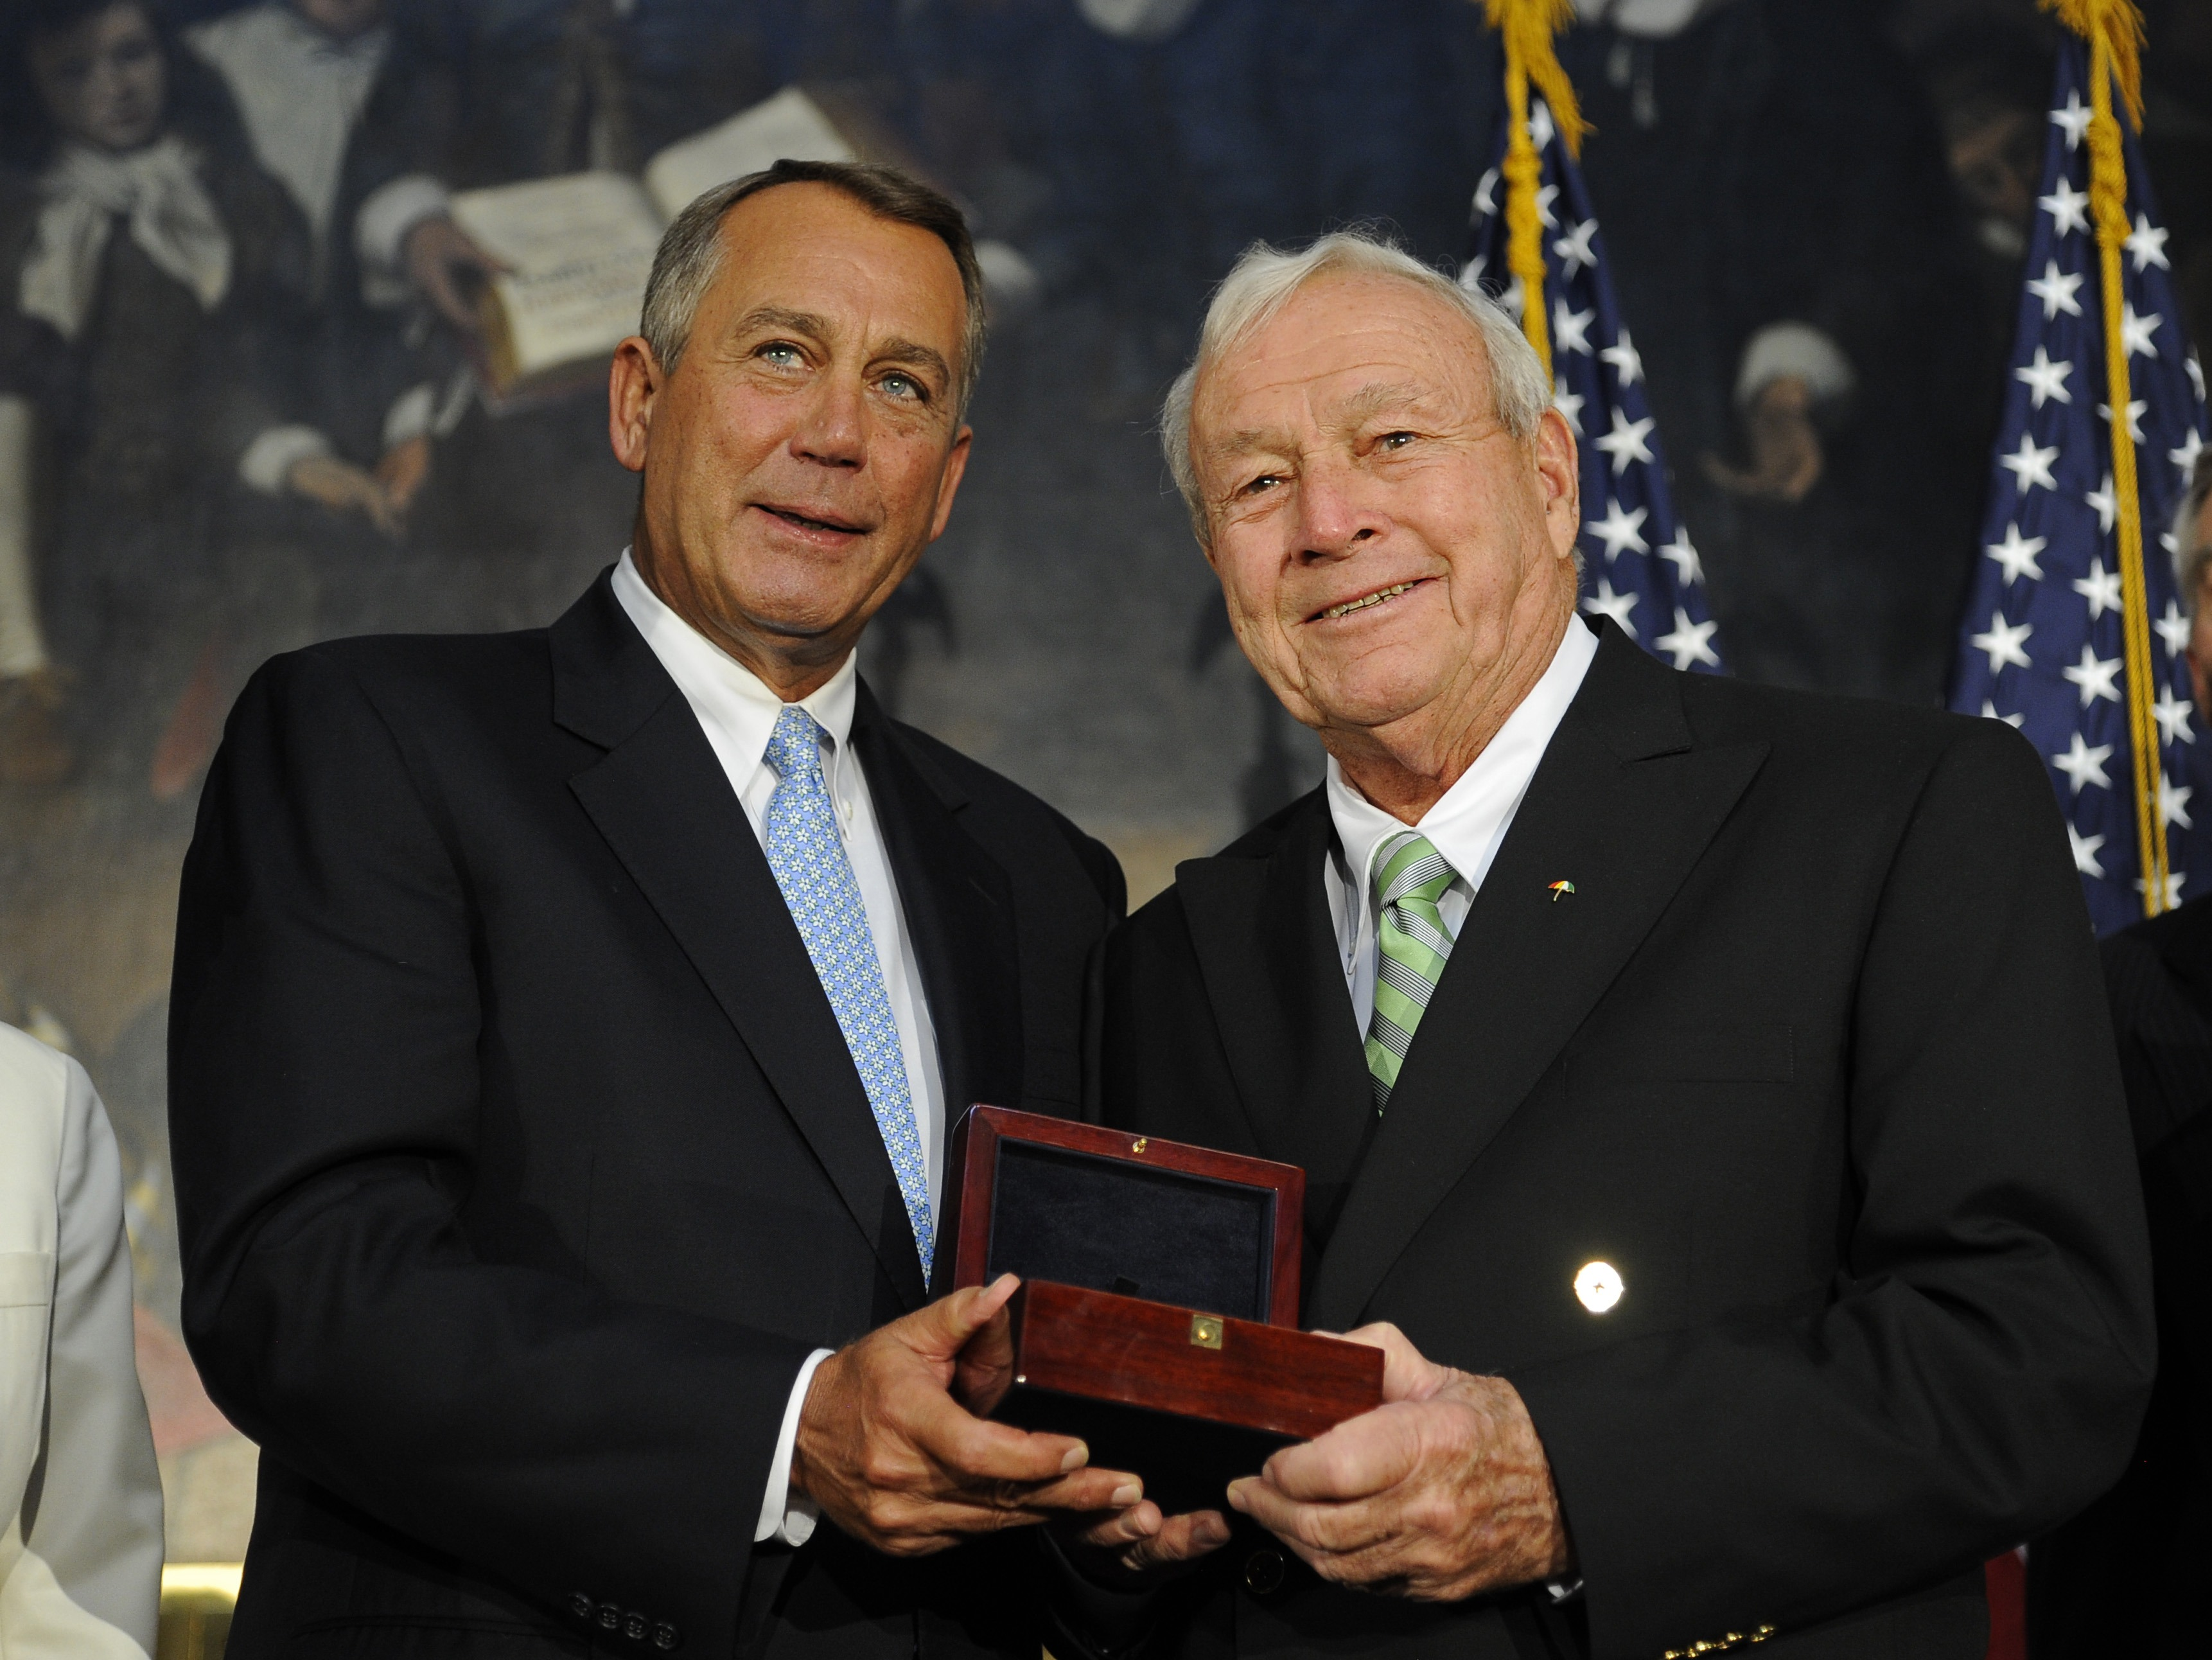 Speaker of the House John Boehner presents golfing legend Arnold Palmer with the Congressional Gold Medal at a special ceremony in the Rotunda of the Capitol Building on Sept.12, 2012 in Washington.